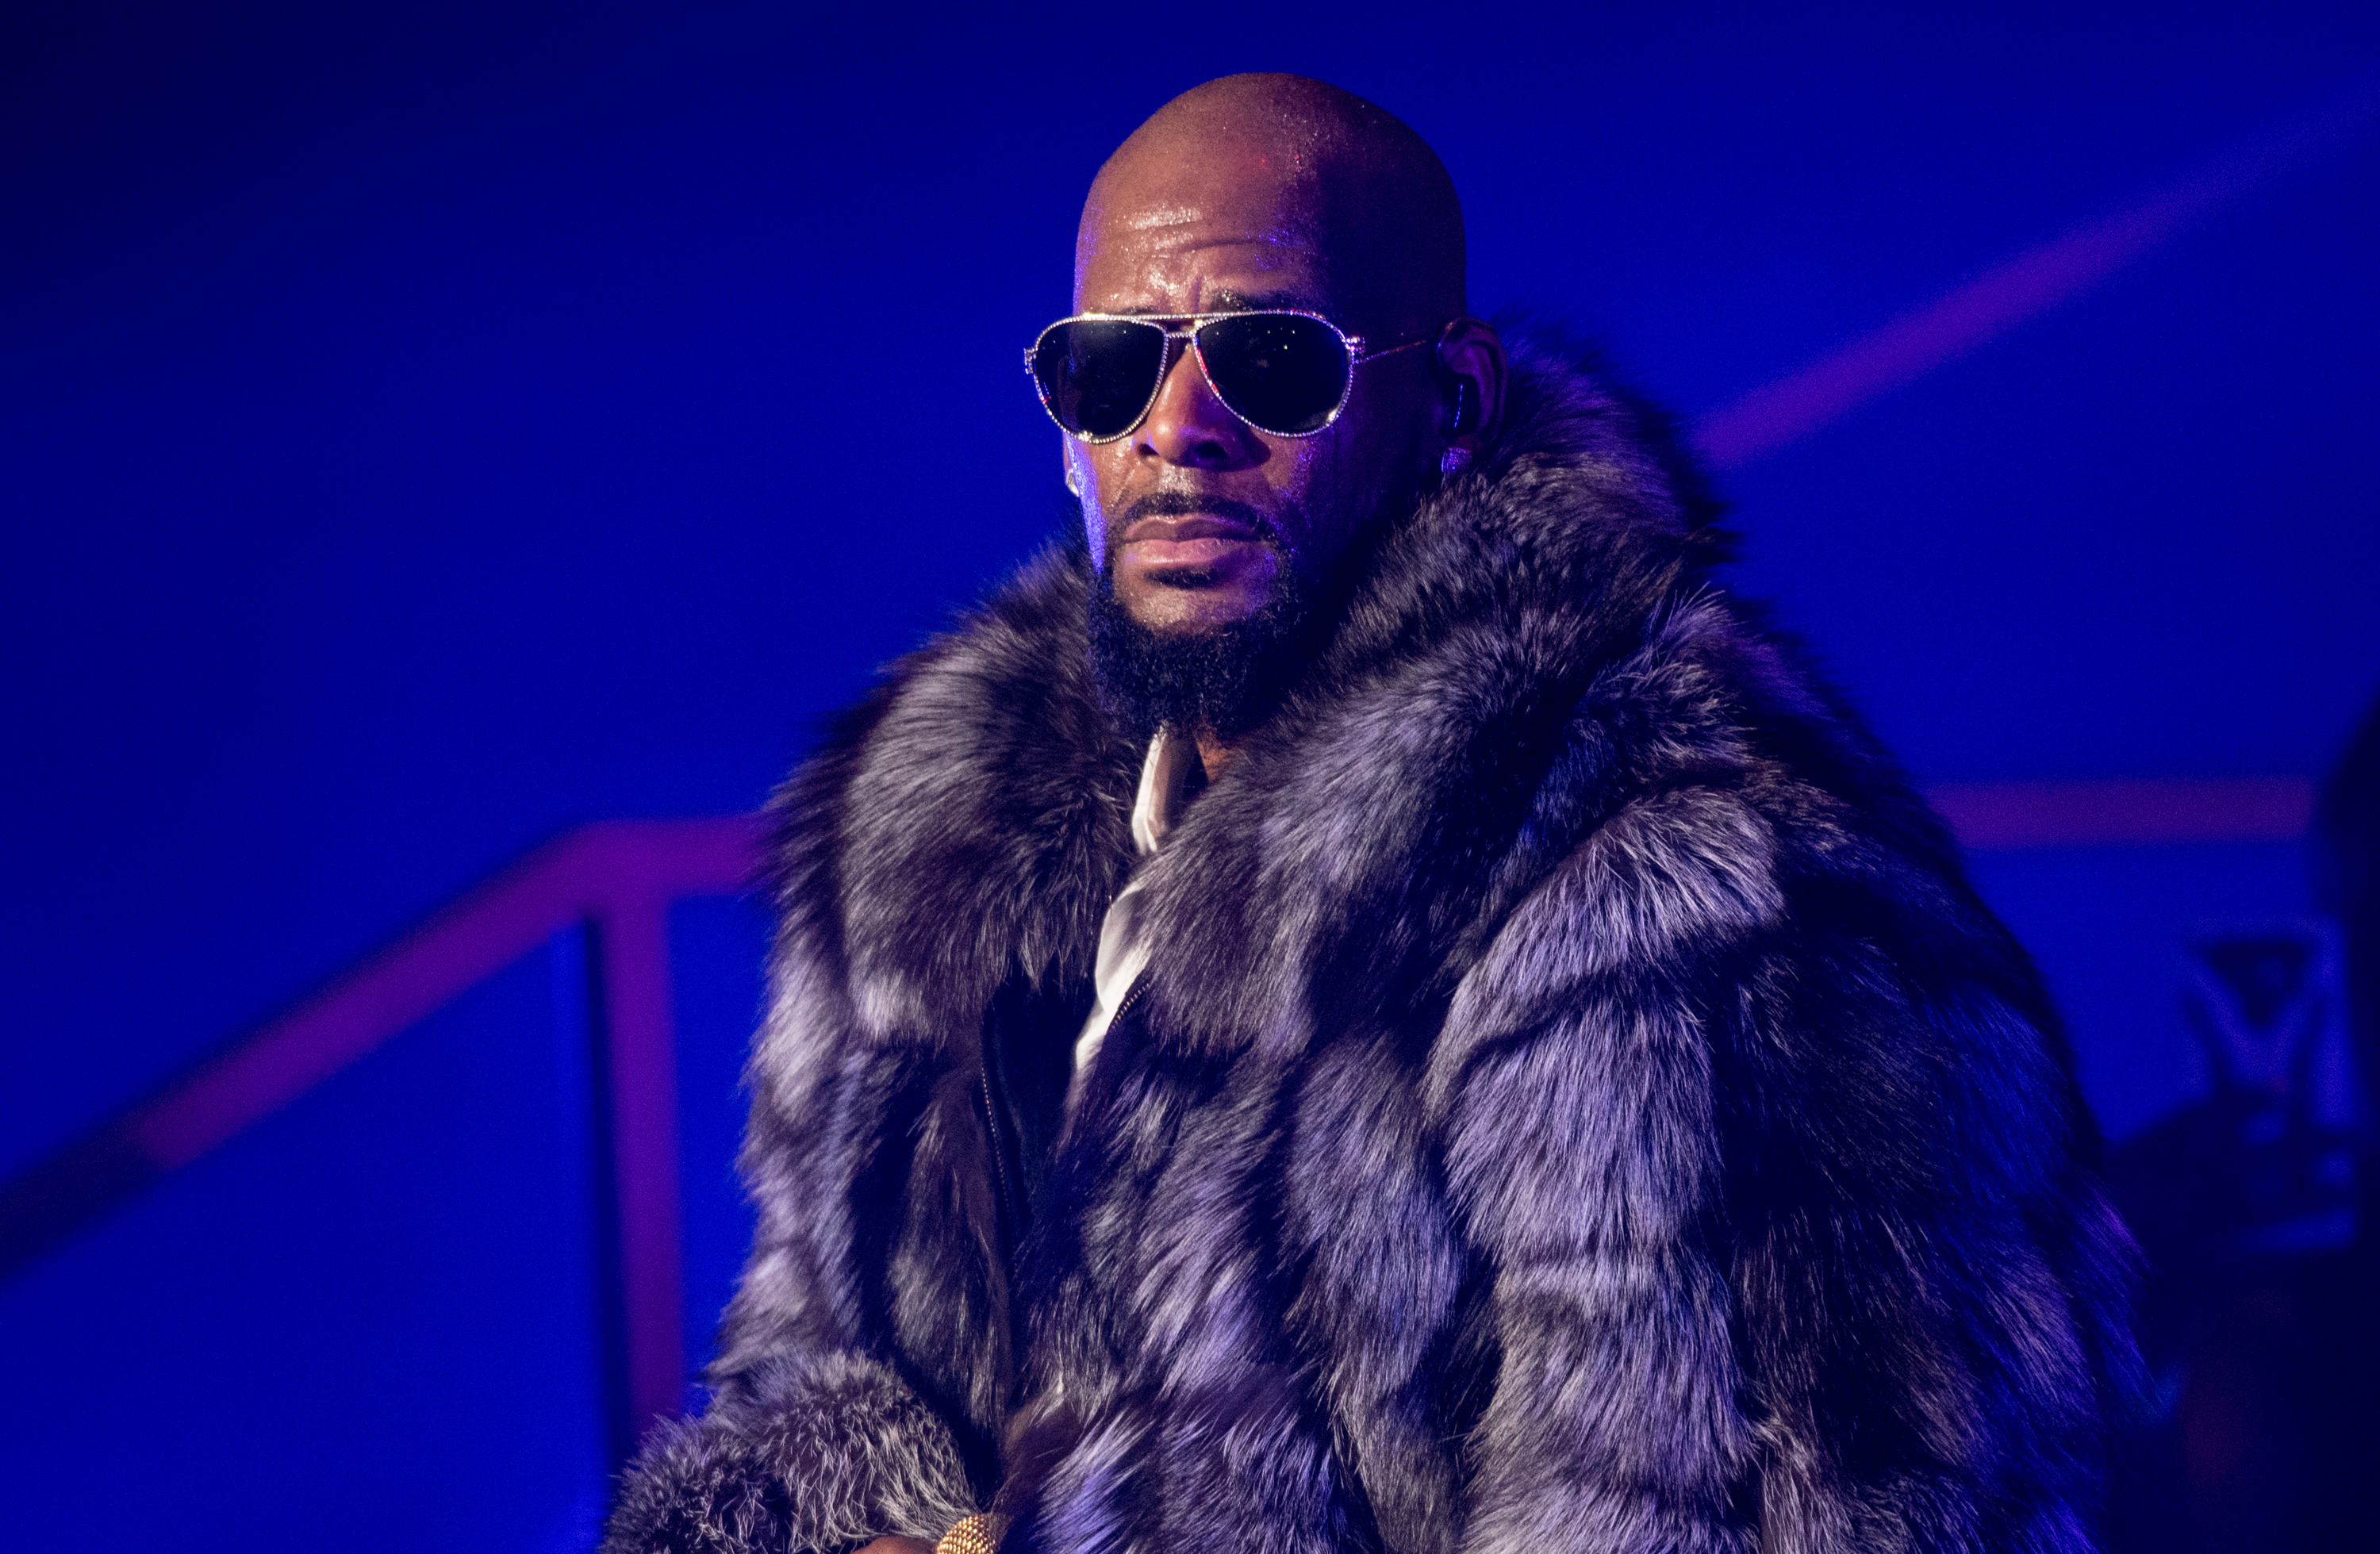 Singer R. Kelly performs in concert during the '12 Nights Of Christmas' tour at Kings Theatre on December 17, 2016 in the Brooklyn borough New York City.